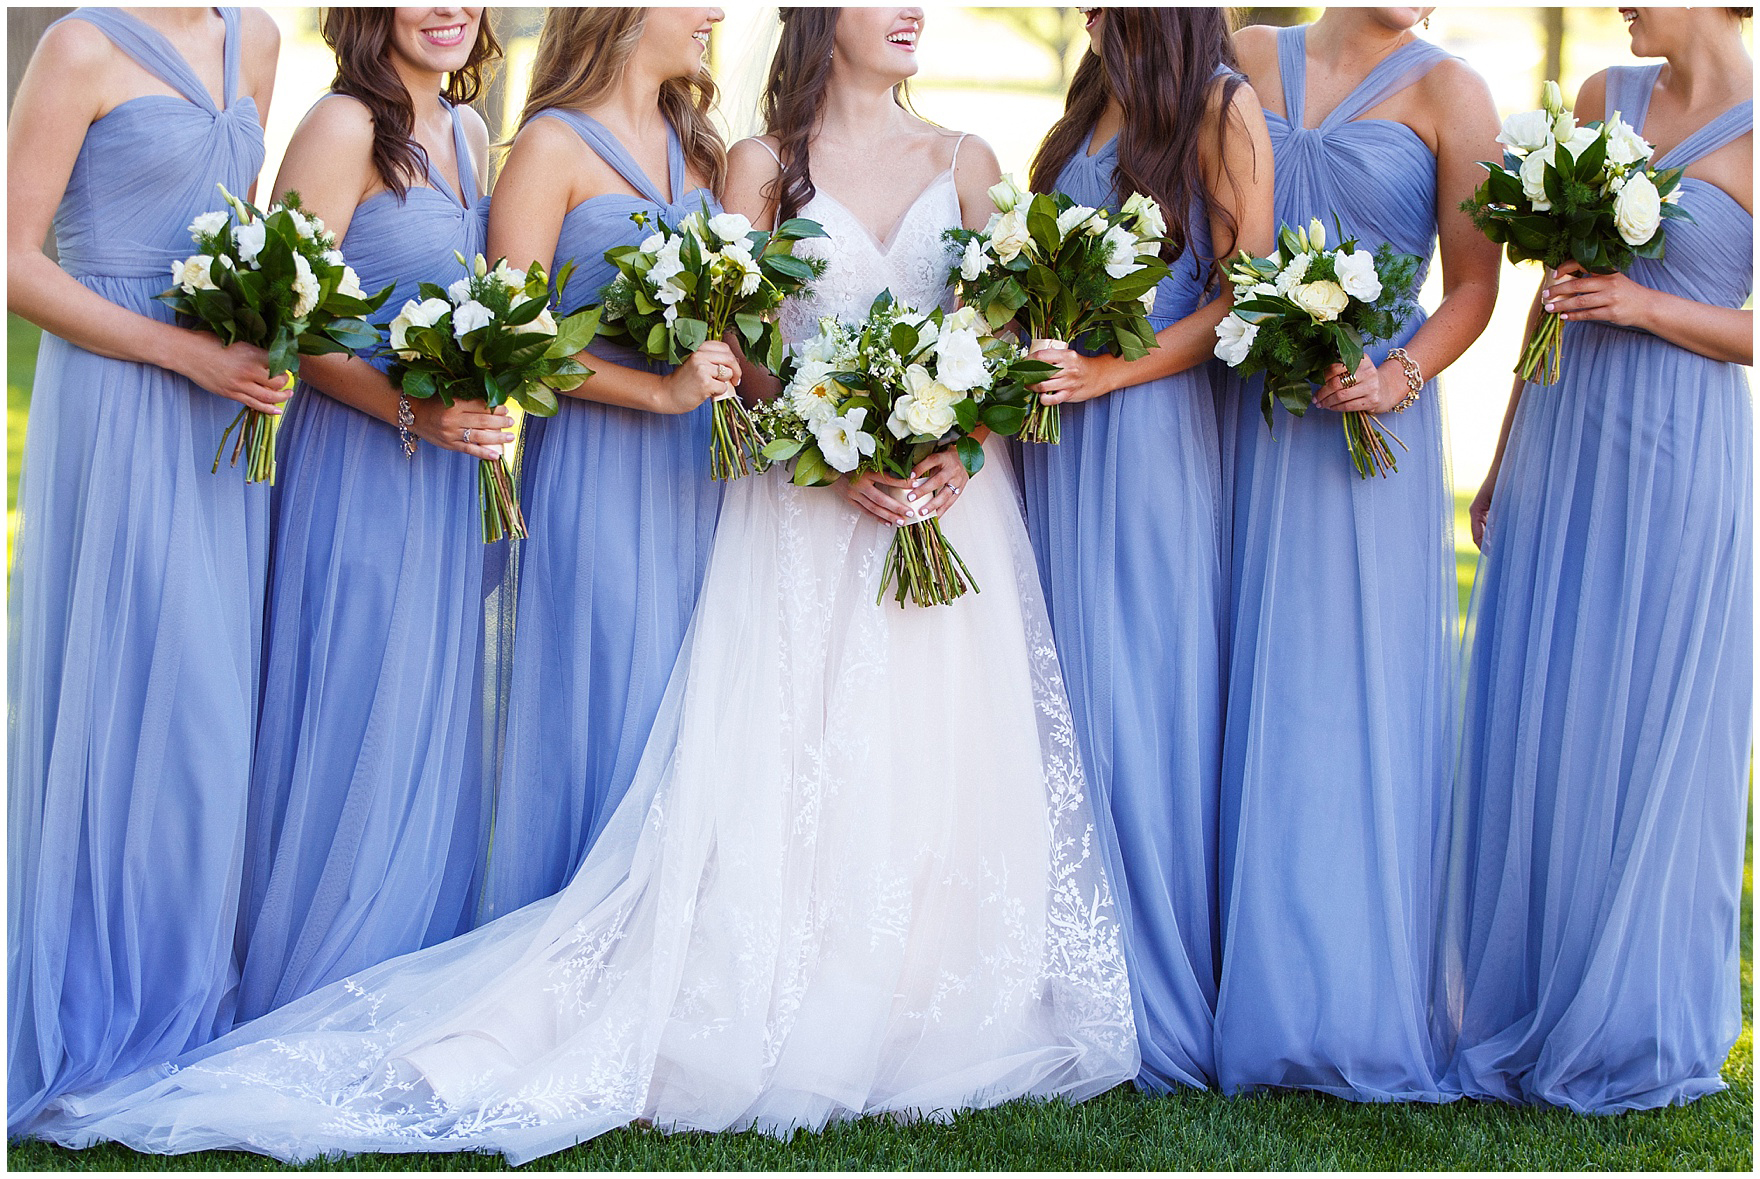 Bridesmaids in pale blue stand with the bride, holding bouquets by Flowers for Dreams, during a Butterfield Country Club wedding.